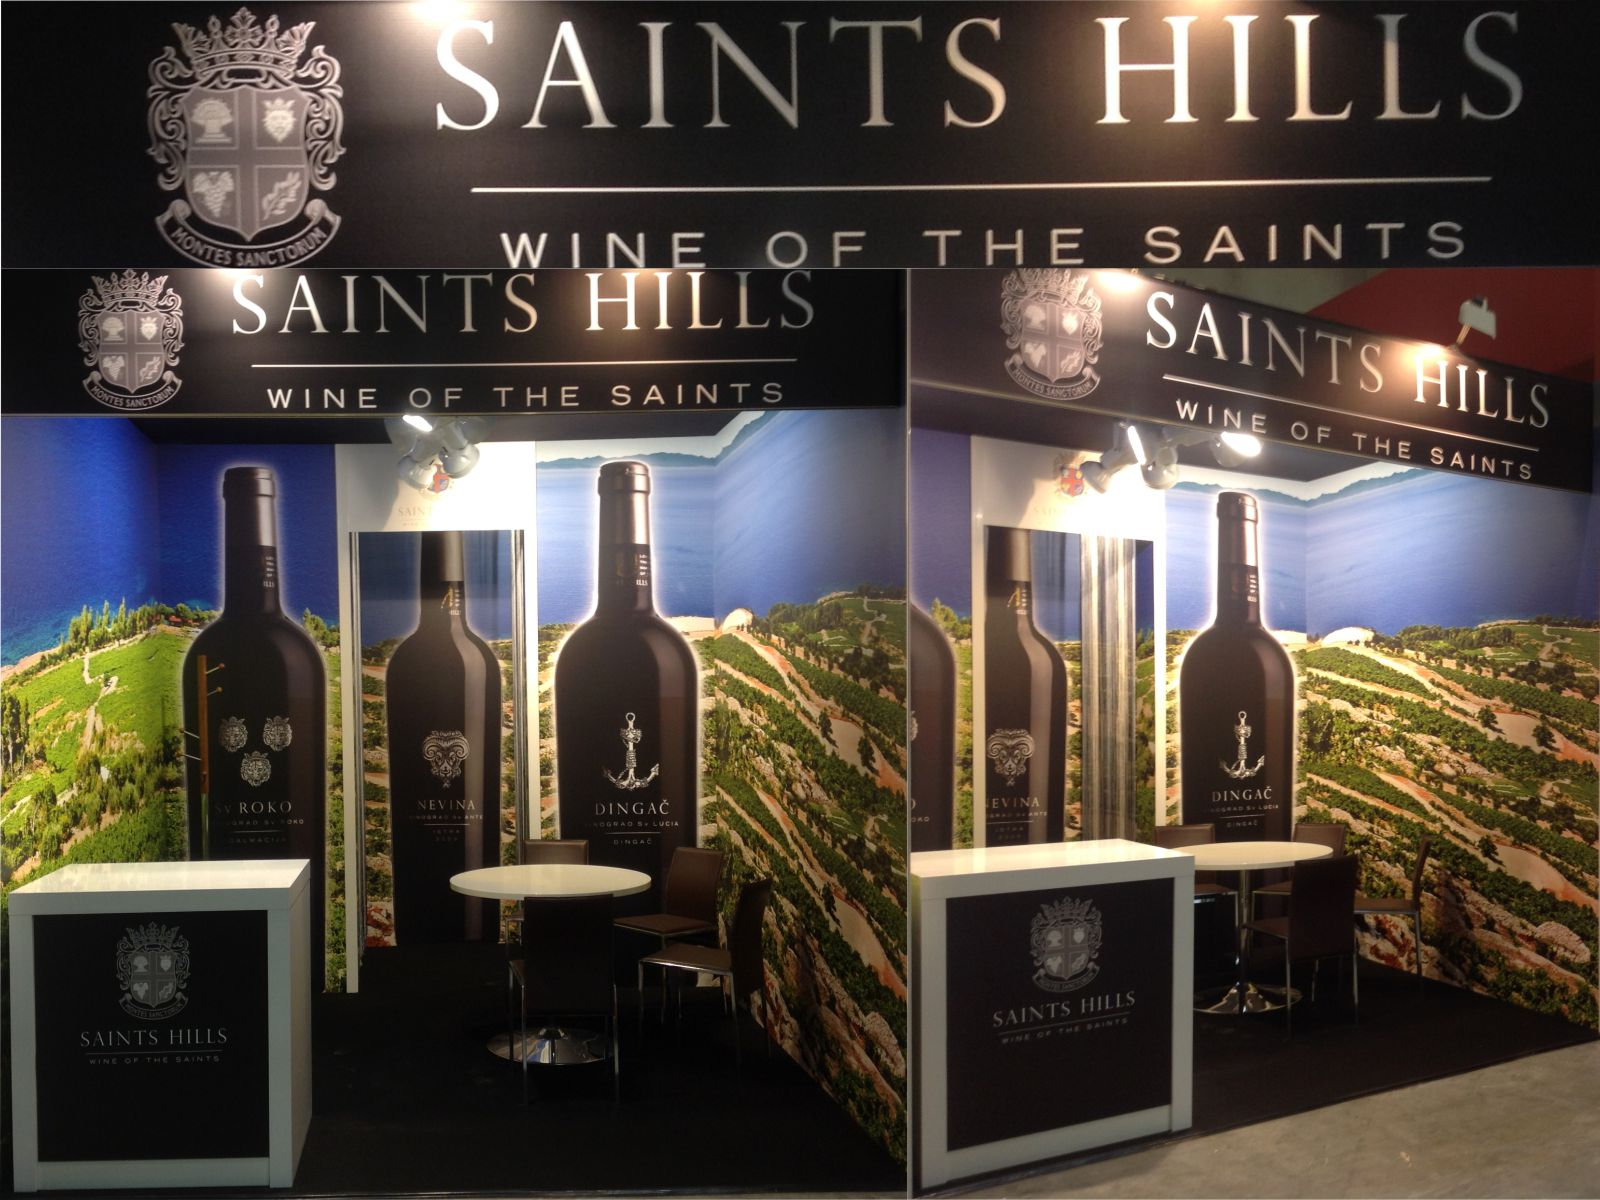 VINITALY 2016 SAINTS HILLS